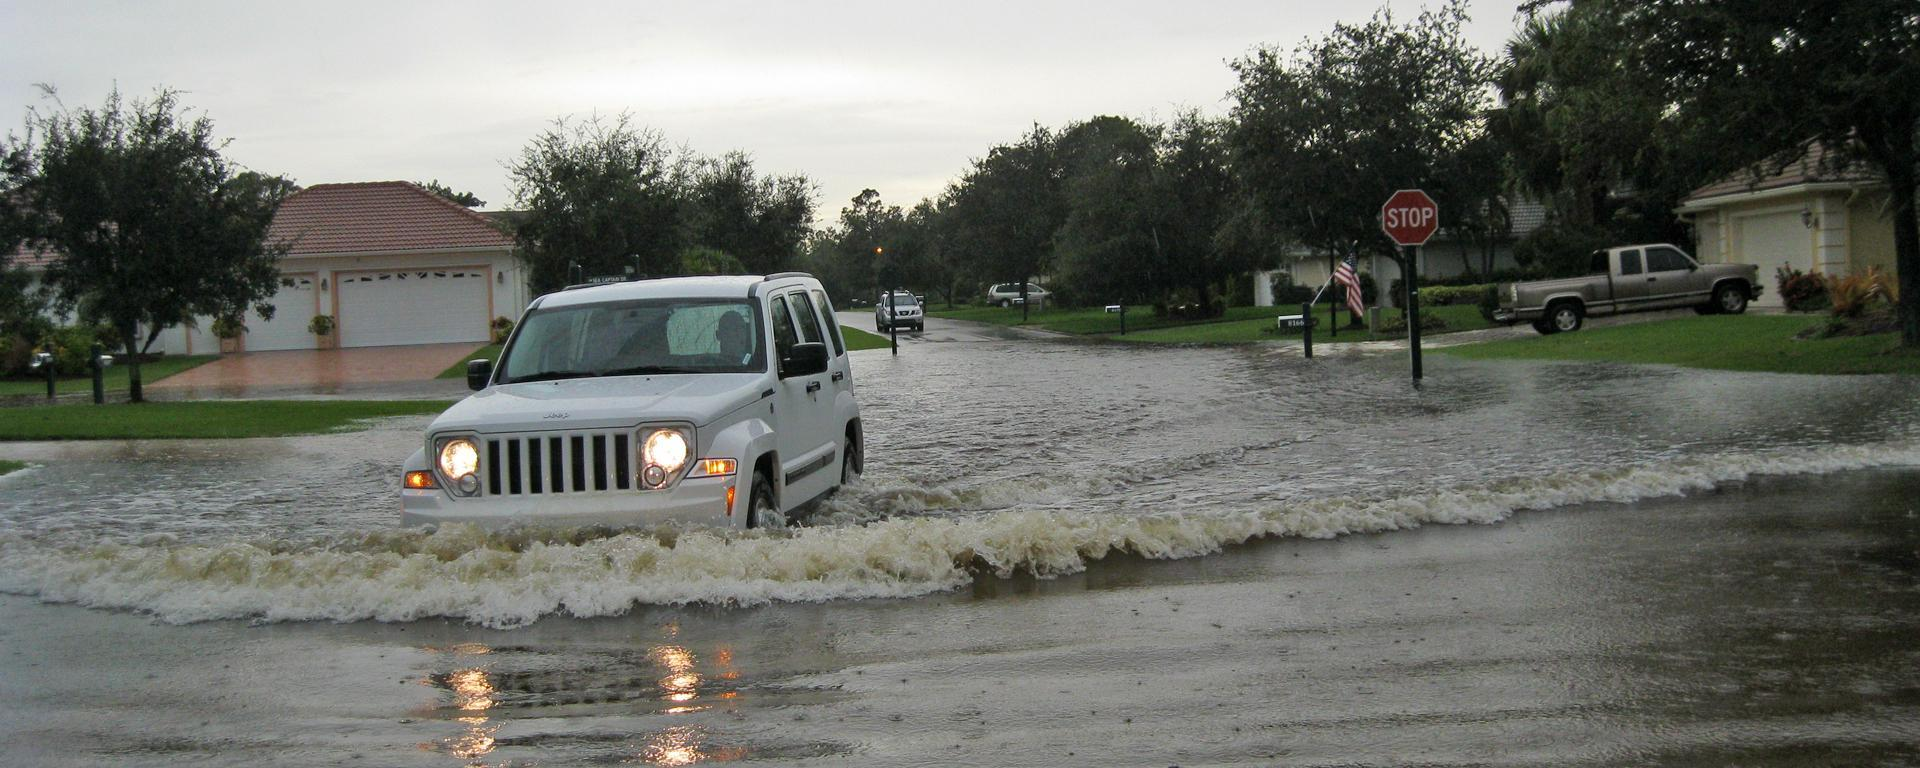 An image of Flooding